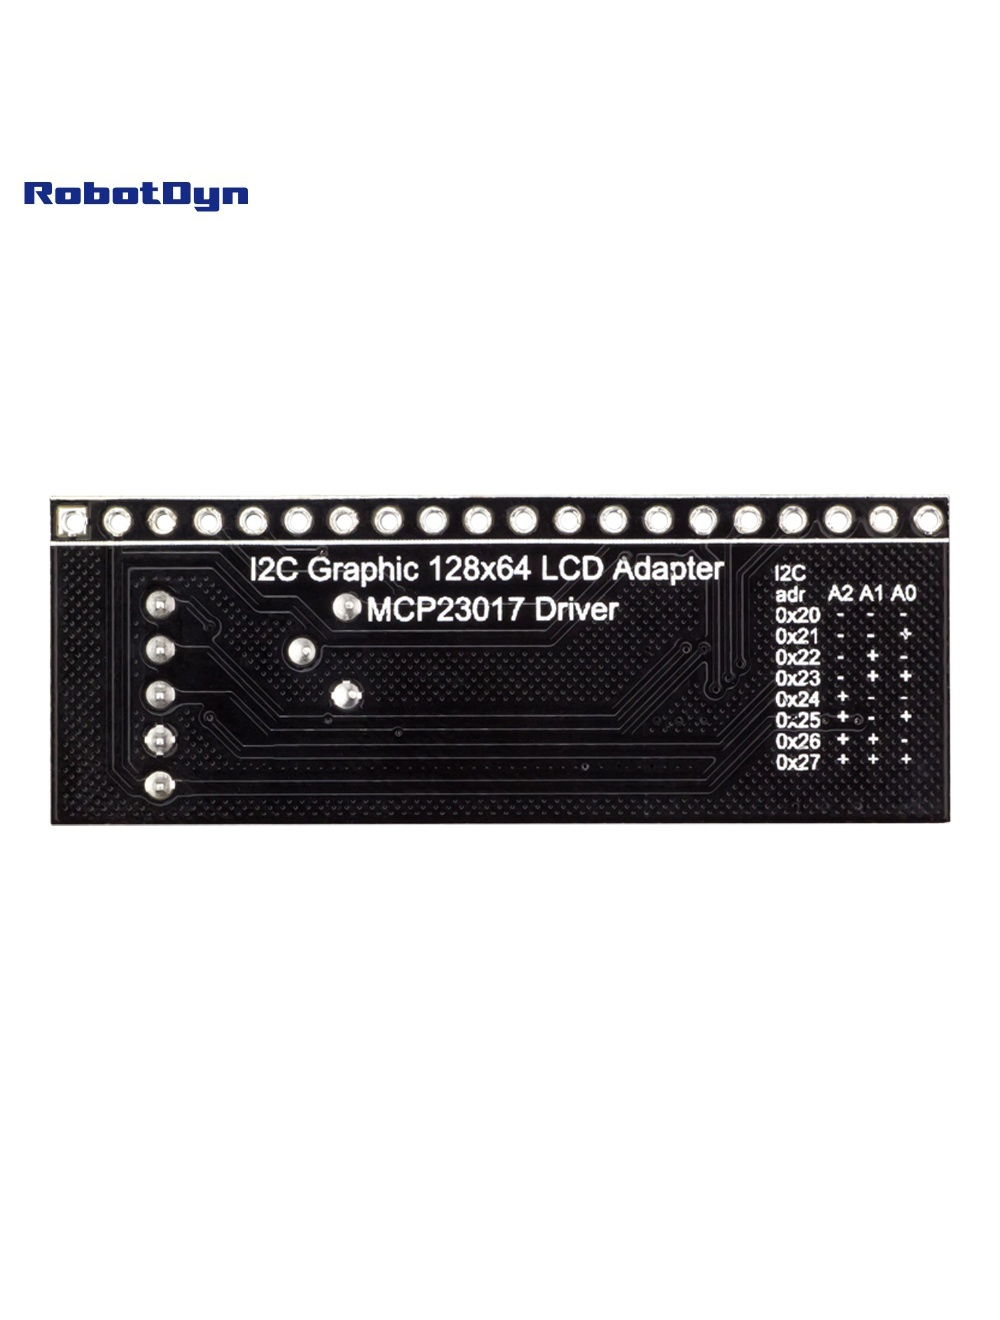 I2C Graphic 128x64 LCD Adapter